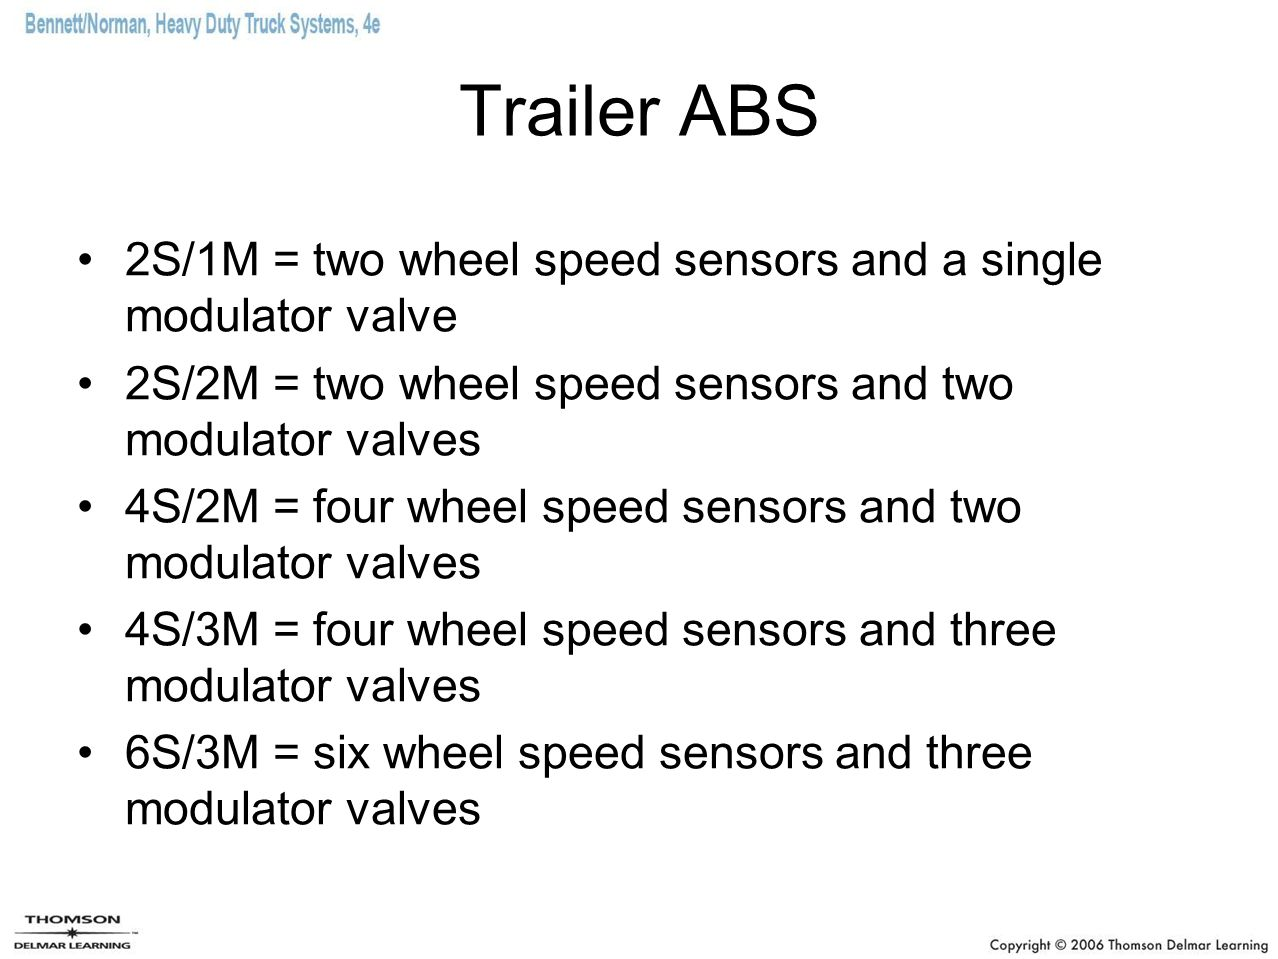 Trailer ABS 2S/1M = two wheel speed sensors and a single modulator valve. 2S/2M = two wheel speed sensors and two modulator valves.